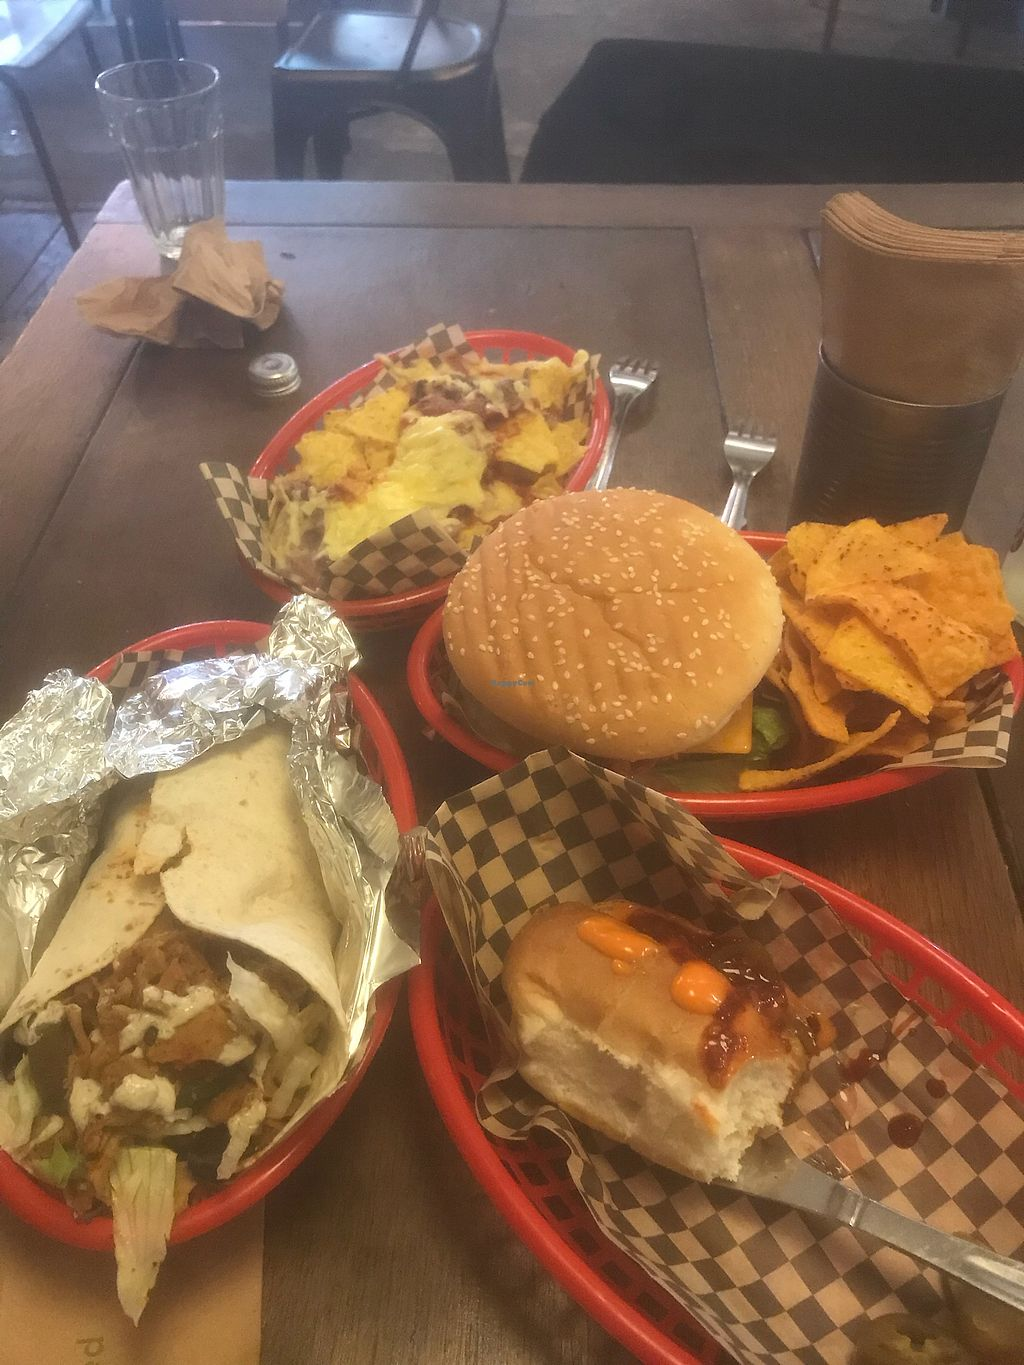 """Photo of Vx  by <a href=""""/members/profile/BryanCyrilWatt"""">BryanCyrilWatt</a> <br/>Junk-tastic vegan food! <br/> March 8, 2018  - <a href='/contact/abuse/image/67456/368274'>Report</a>"""